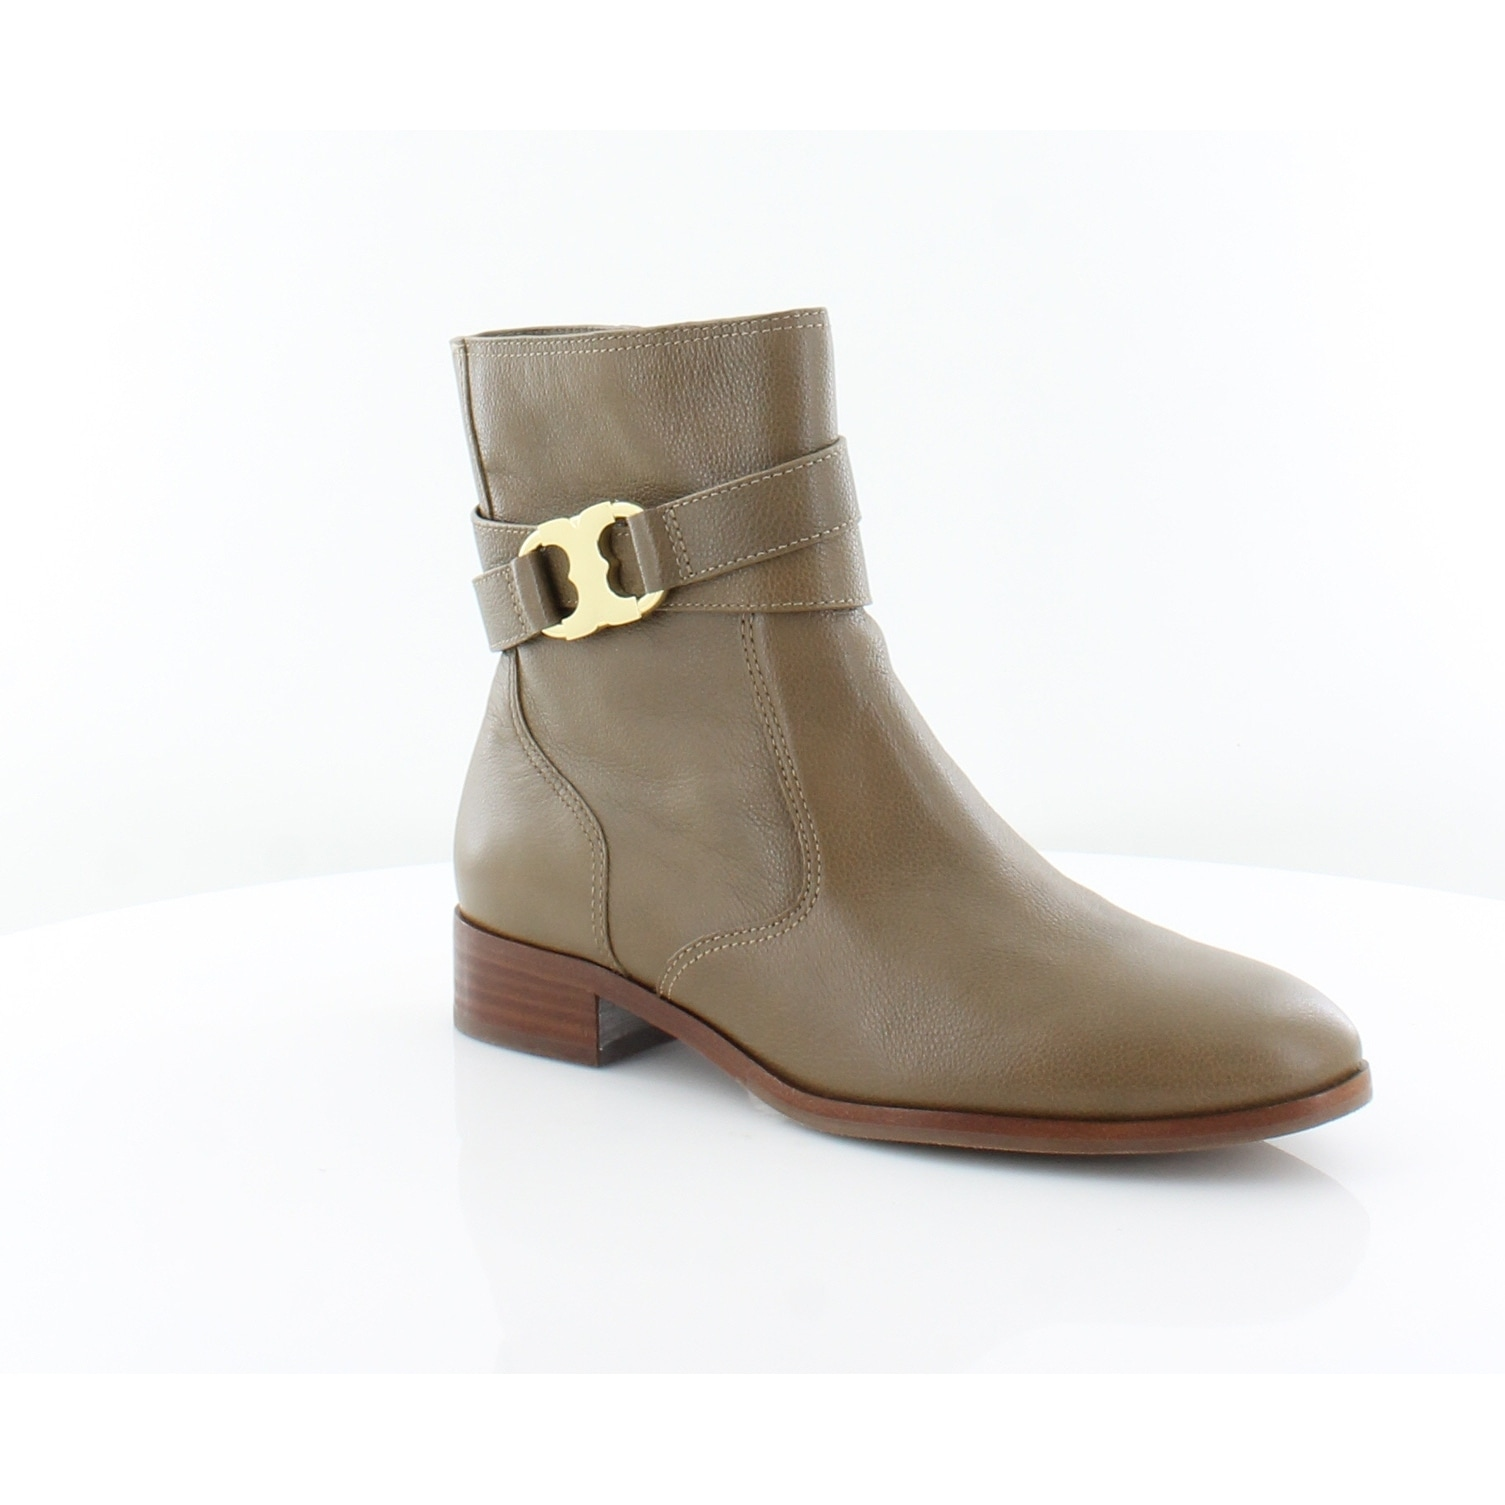 3b5aaee60ab Shop Tory Burch Gemini Link Bootie Women s Boots River Rock - Free ...